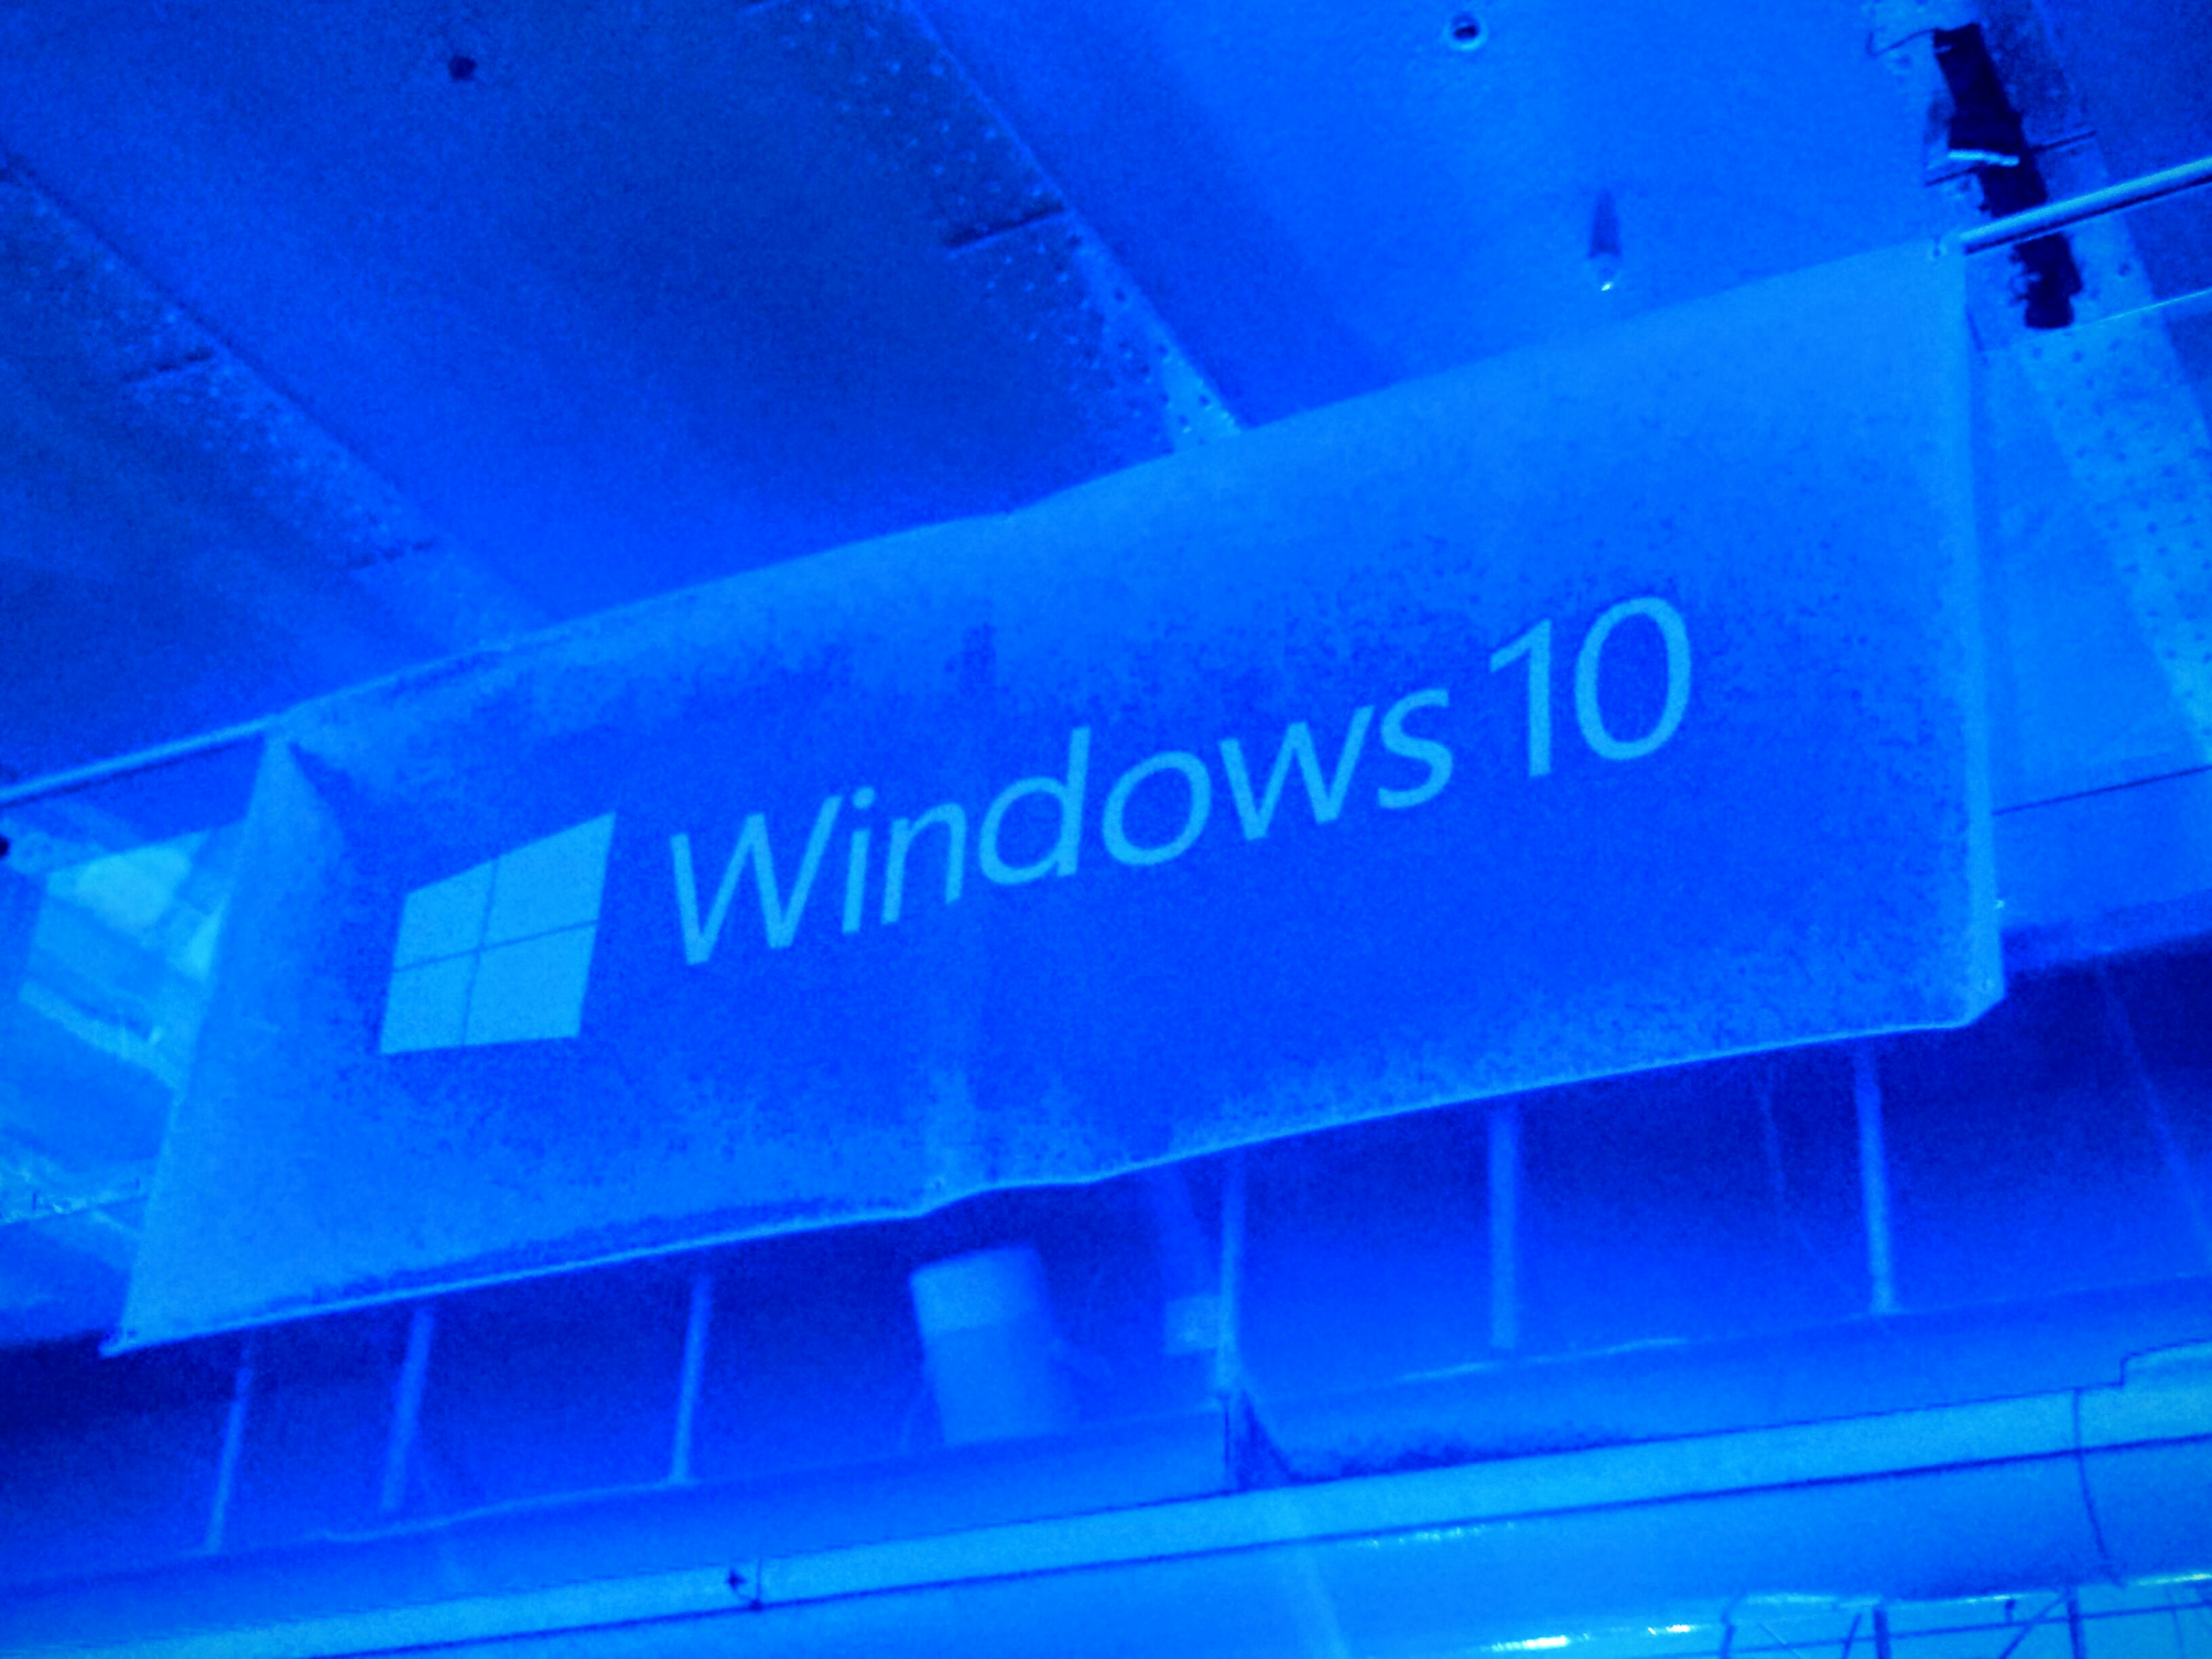 Here's How to Stop Windows 10 from Installing Without Consent